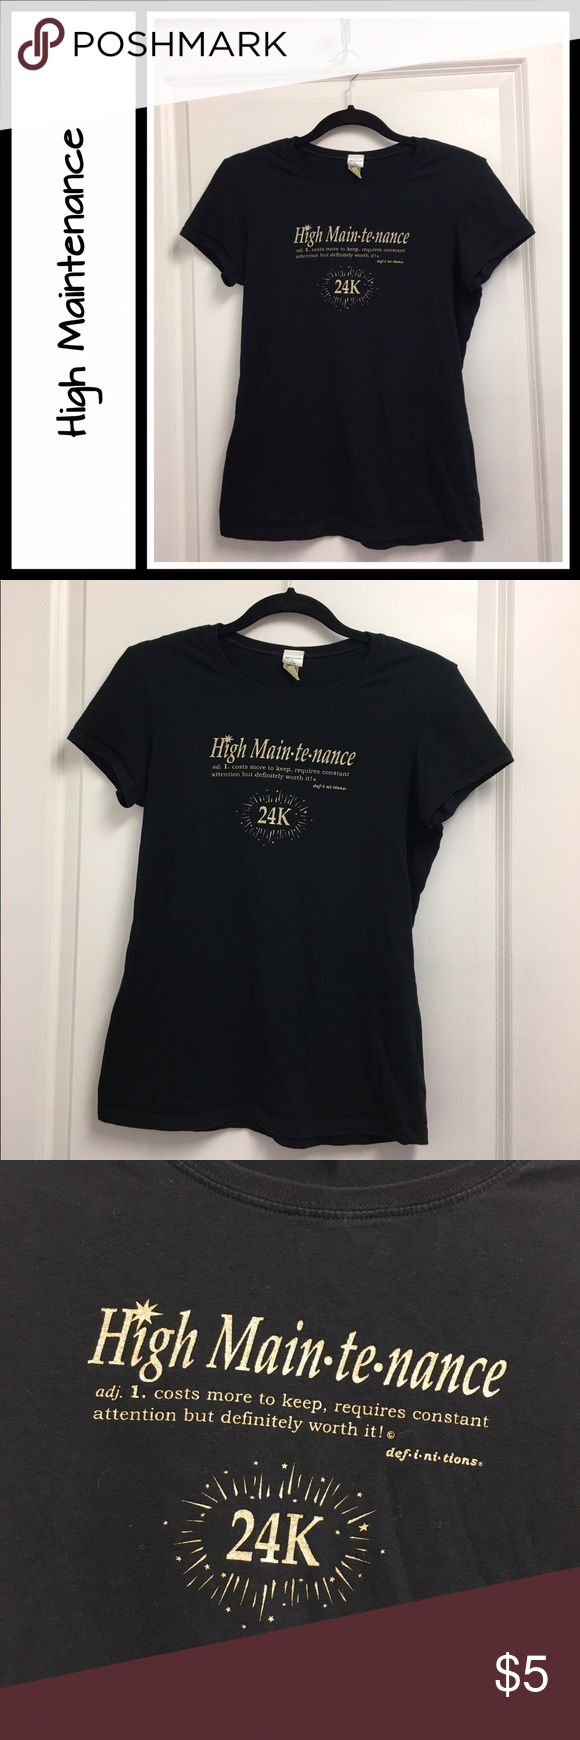 $5 Sale! High Maintenance Graphic tee Perfect condition - size is large but runs small - prob juniors, good for women's small definitions Tops Tees - Short Sleeve